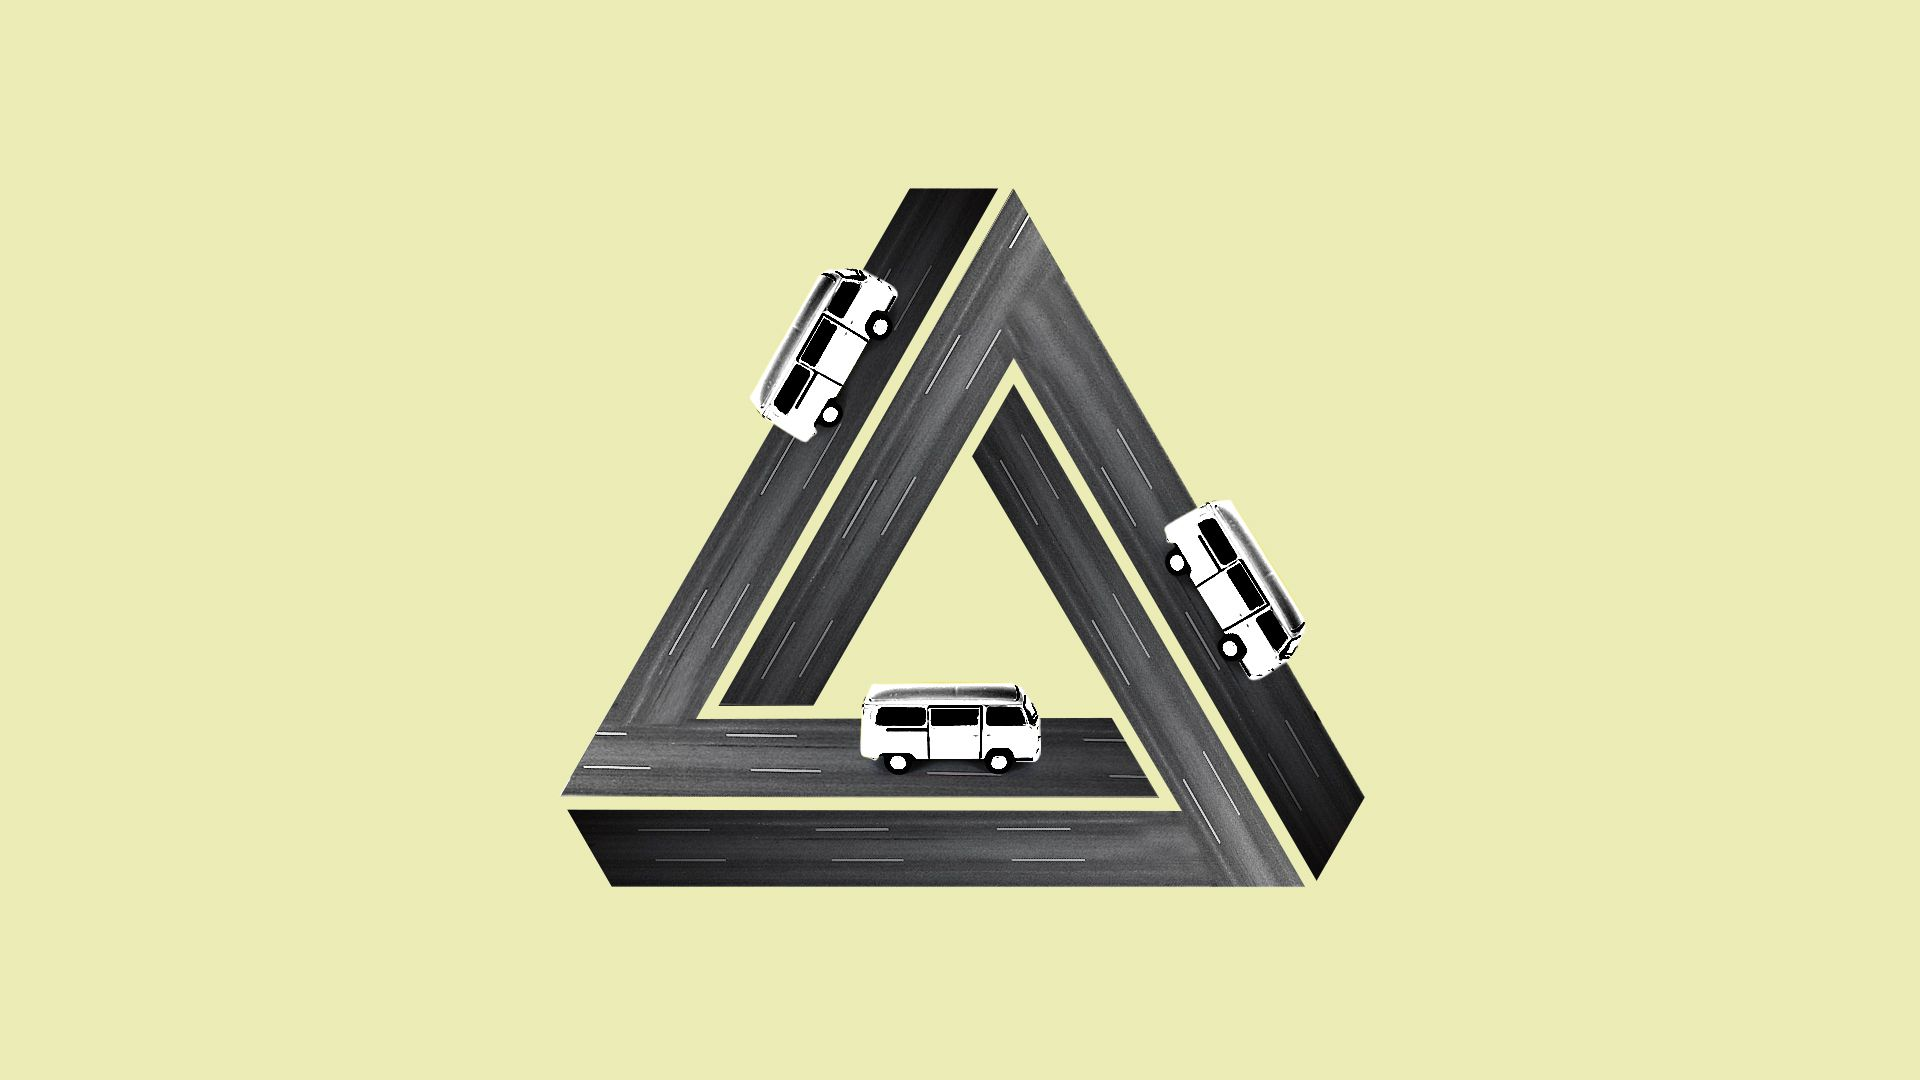 Illustration of roads in the shape of a penrose triangle